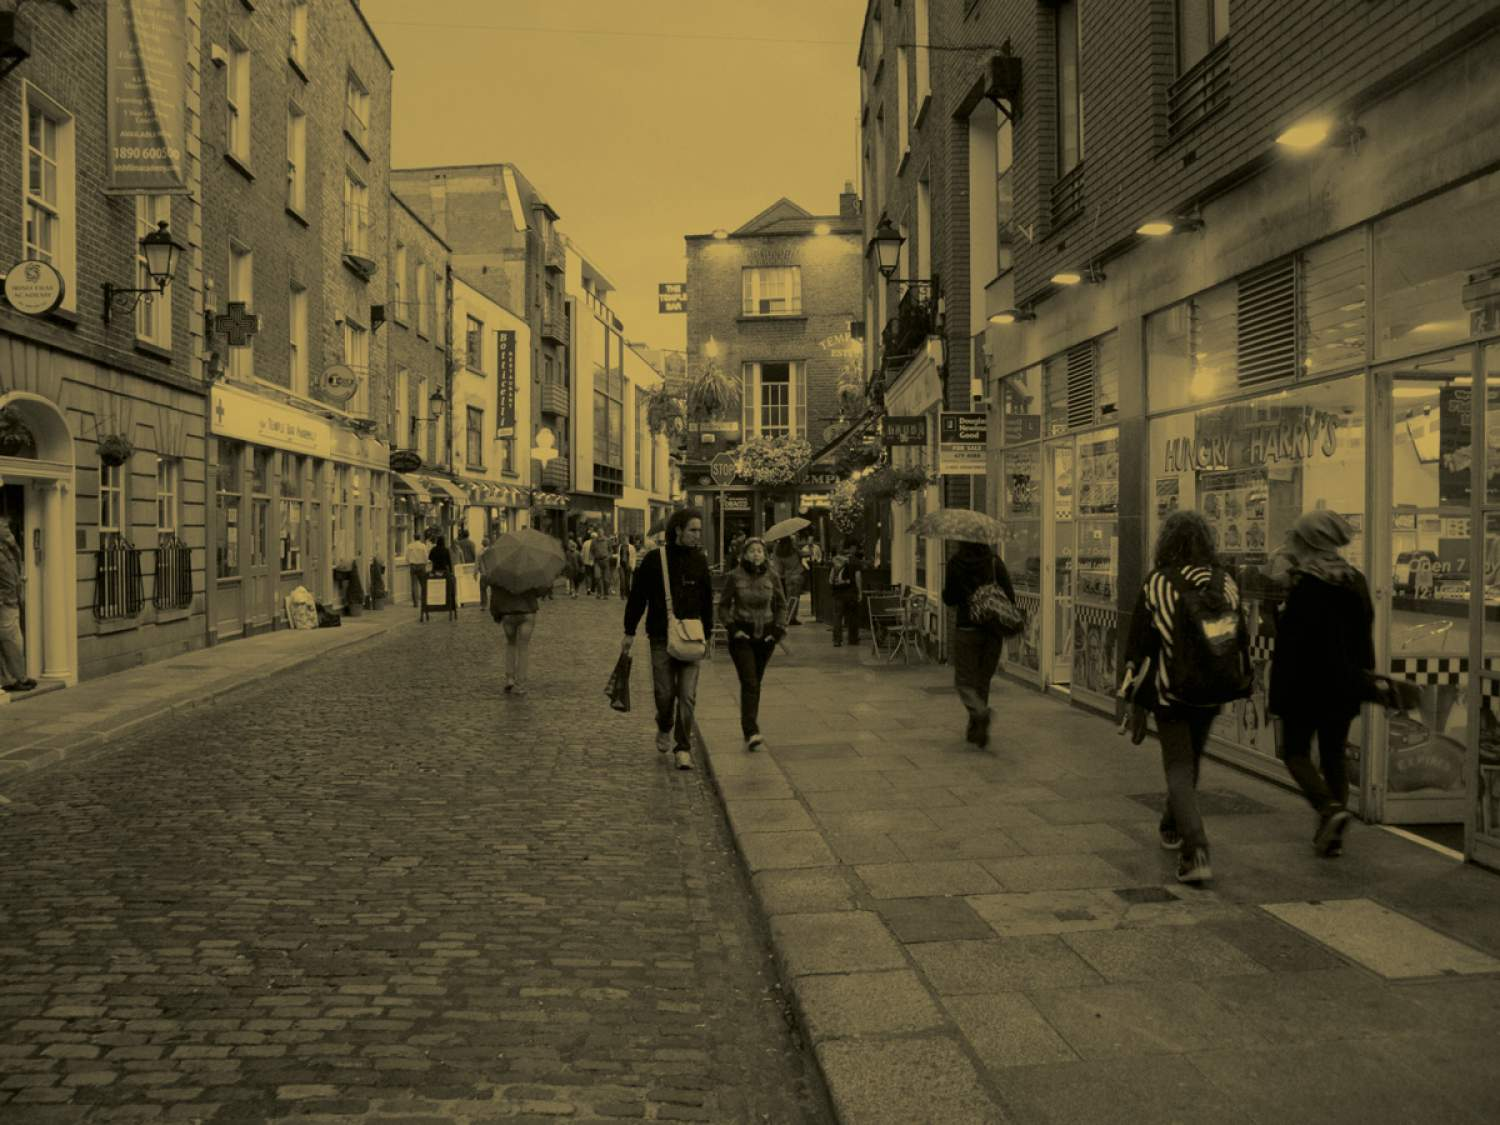 Historic pubs in Dublin - Temple Bar with some of the best historic pubs in Dublin